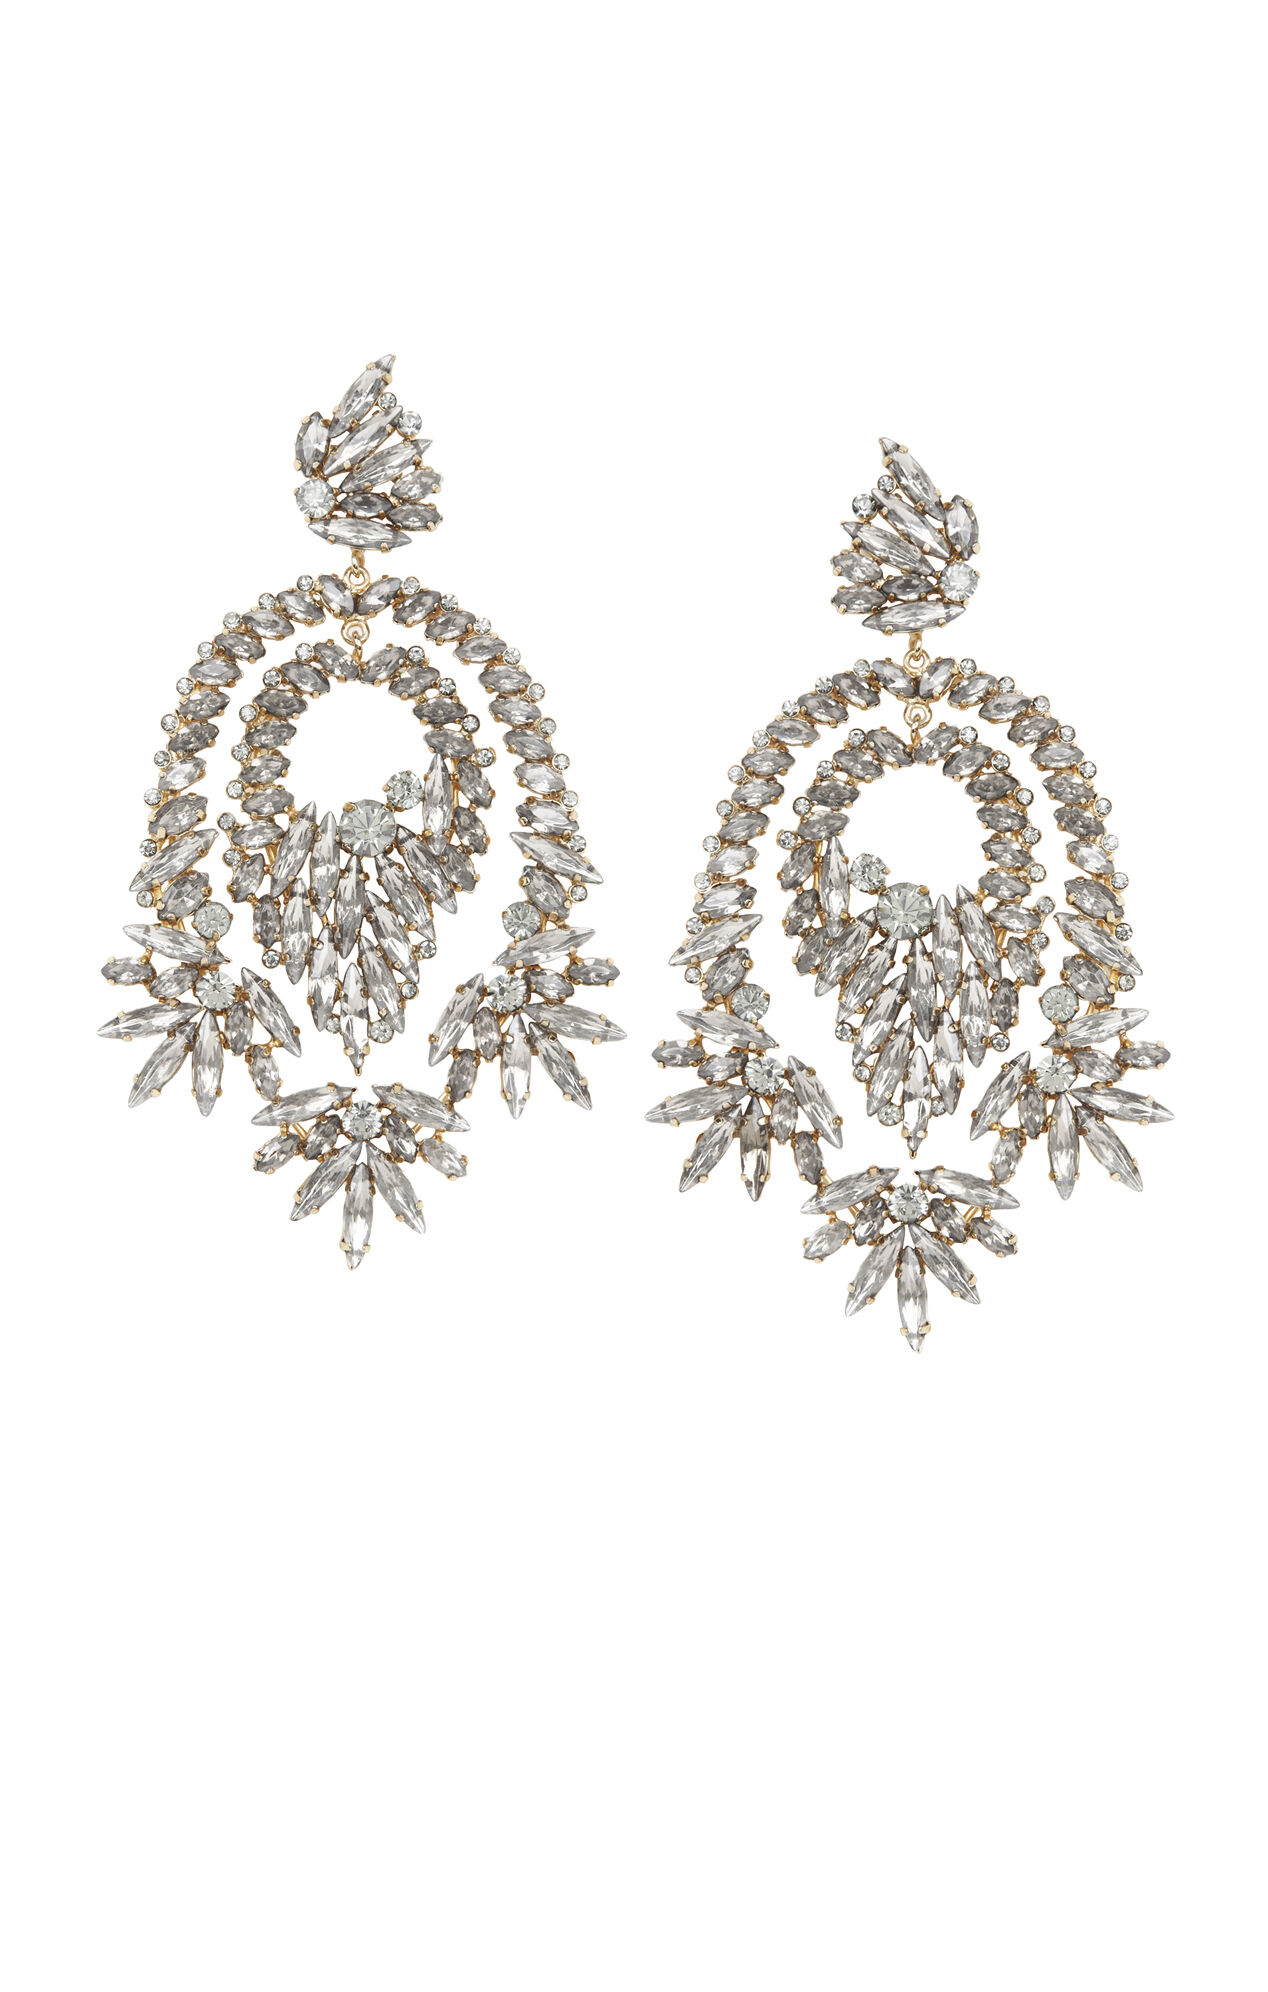 Rhinestone Cocktail Earrings – Oversized Chandelier Earrings